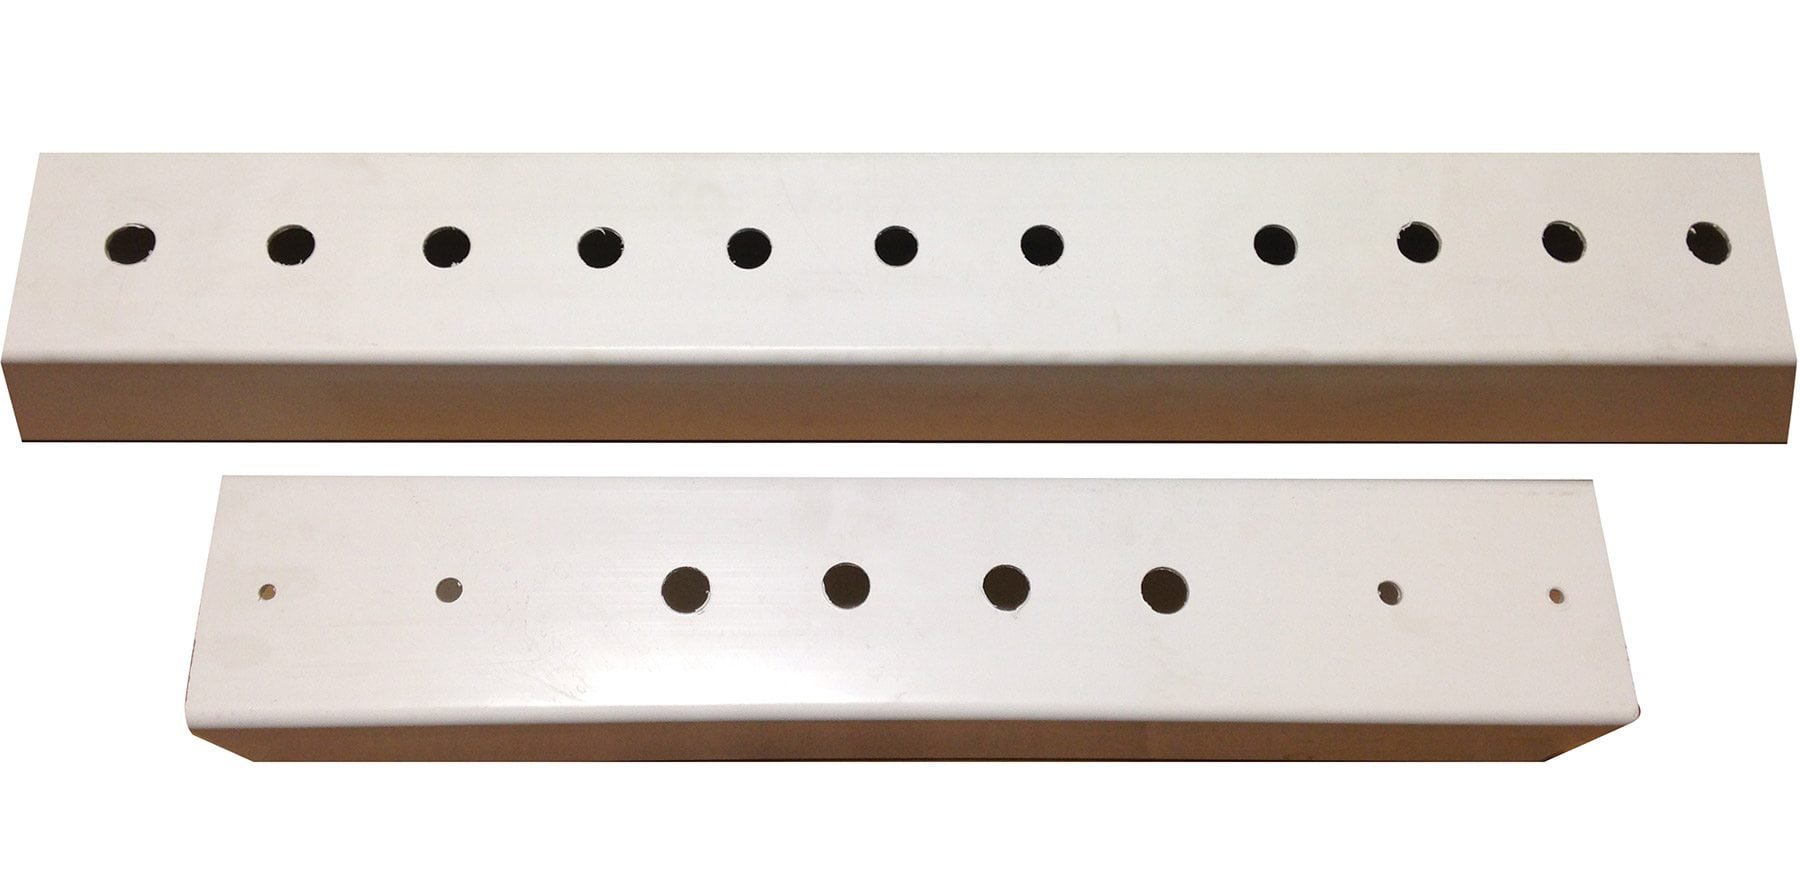 Pvc Sleepers Welcome To Izzy Industries